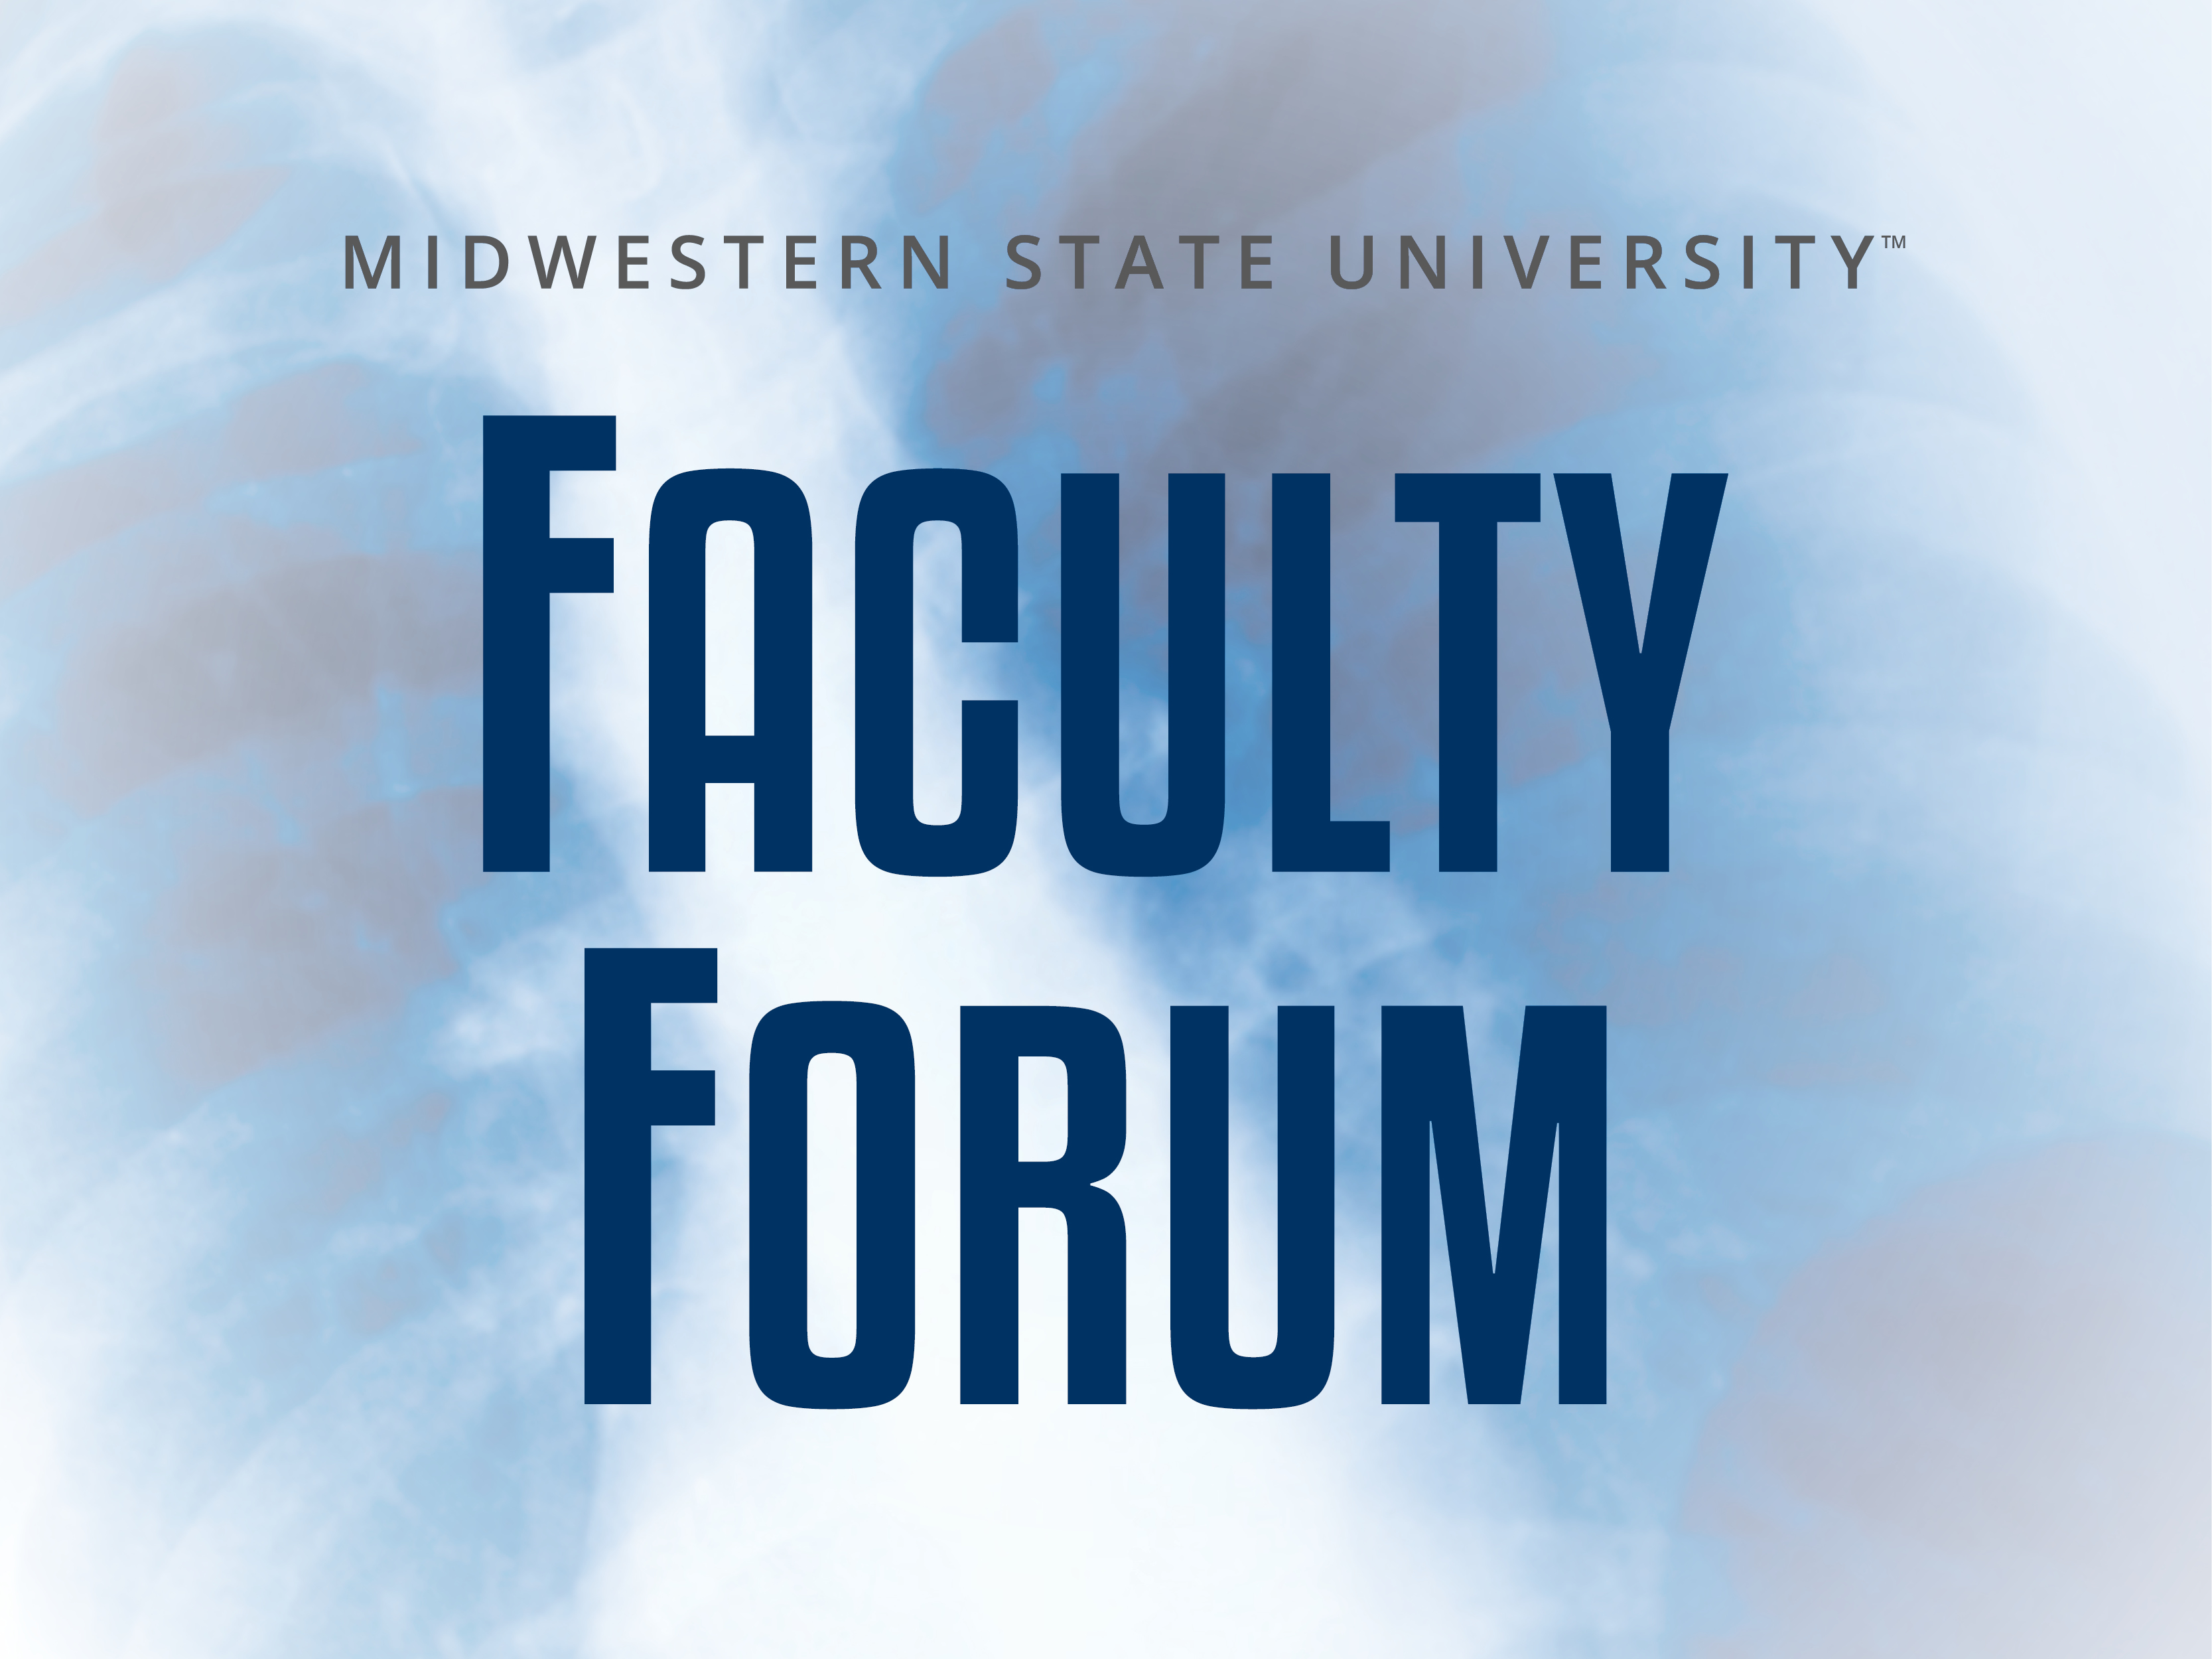 Faculty Forum Series - Dr. Kevin Clark